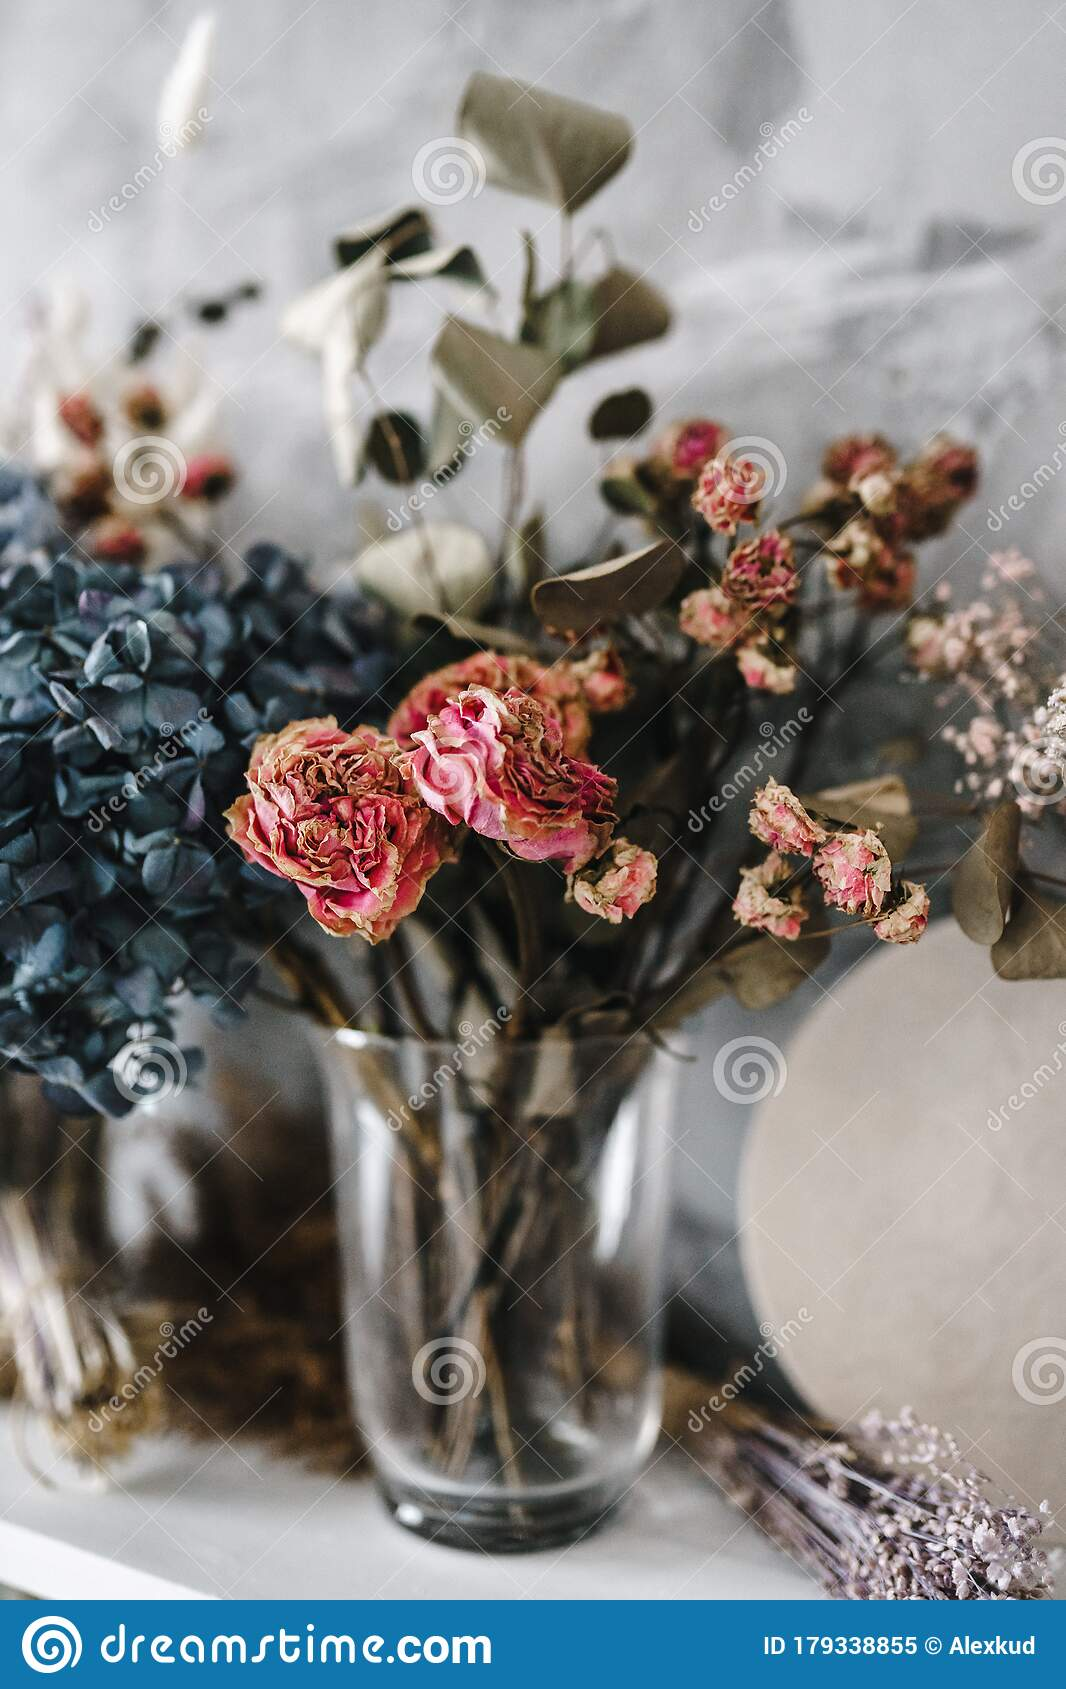 Dry Flowers In The Interior Bouquets Of Dried Flowers Stock Image Image Of Bouquet Design 179338855